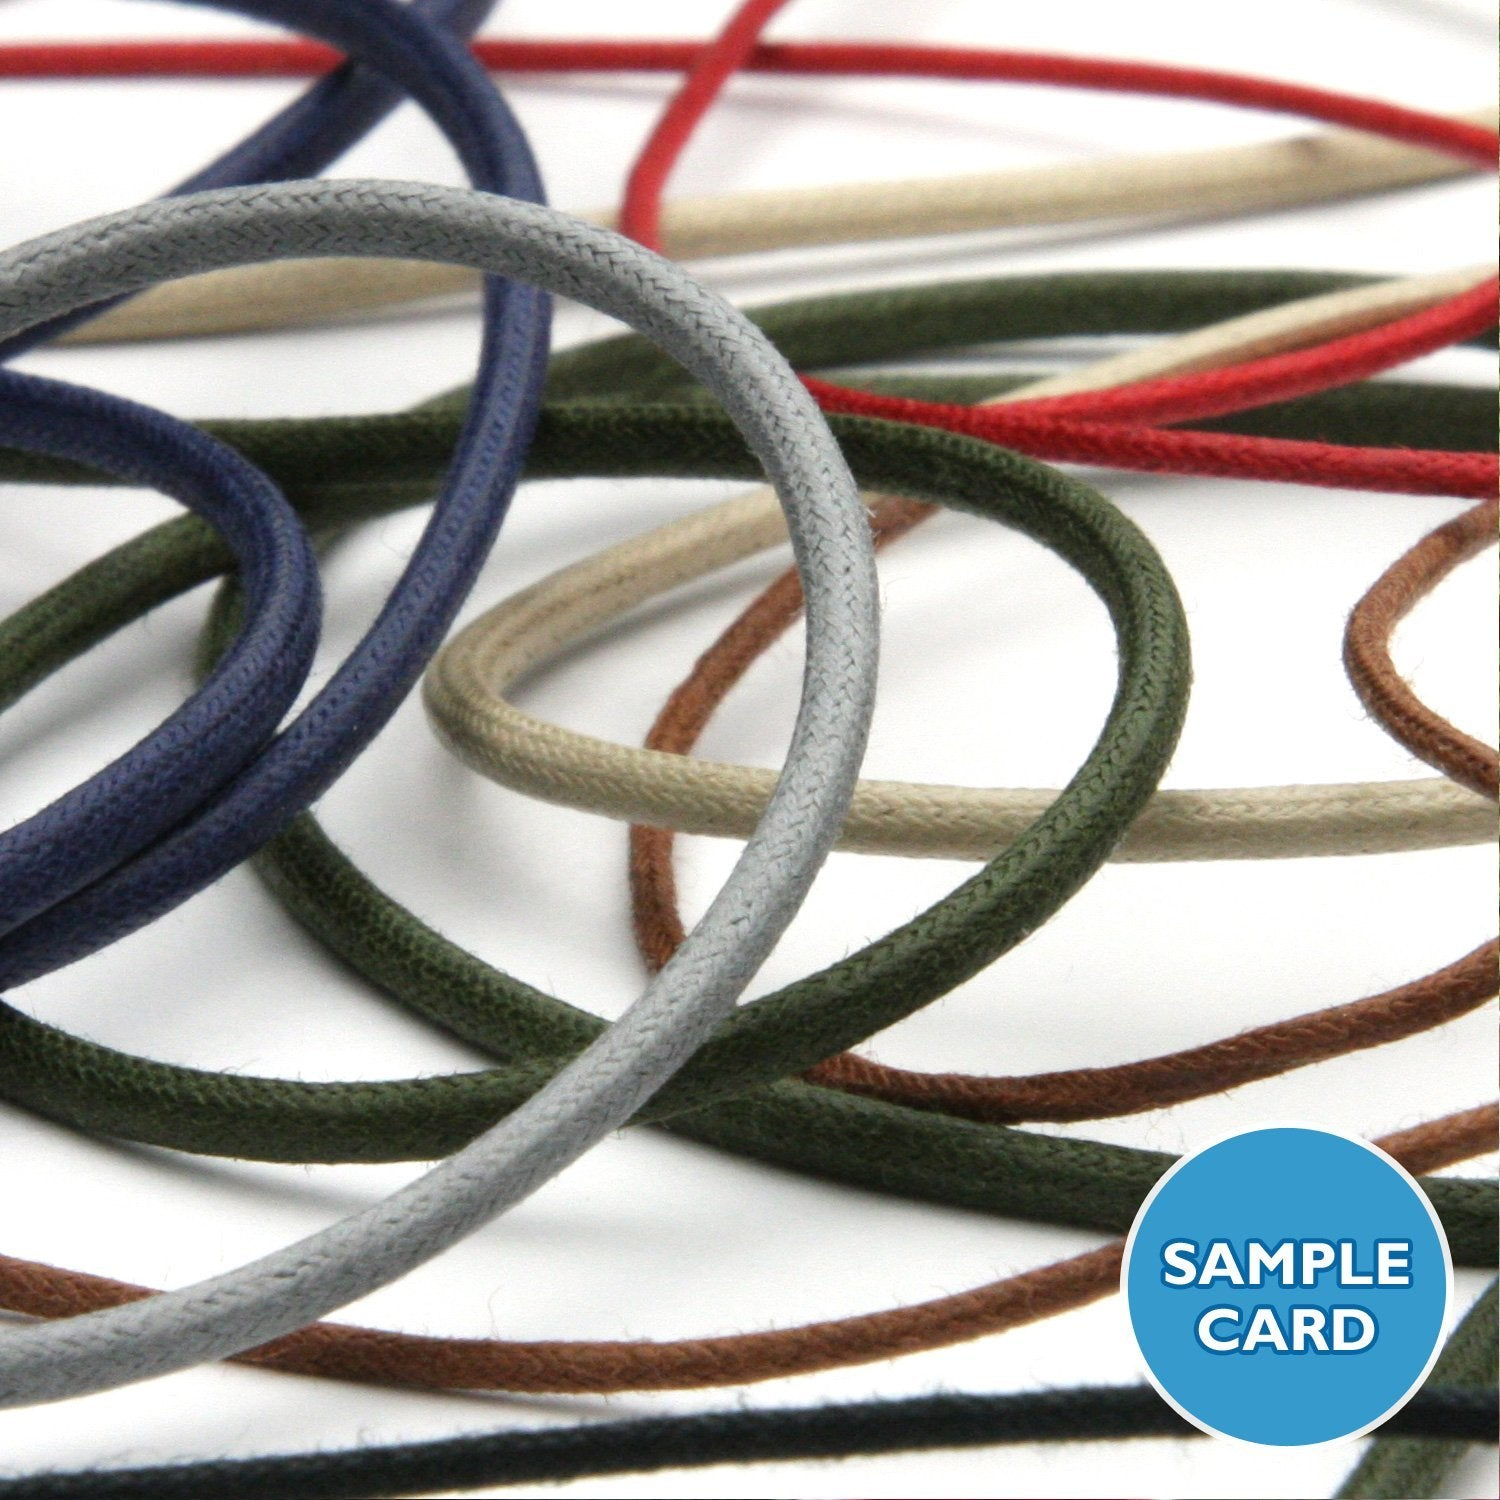 FUJIYAMA RIBBON Sample Card Waxed Cord (FY-C404)